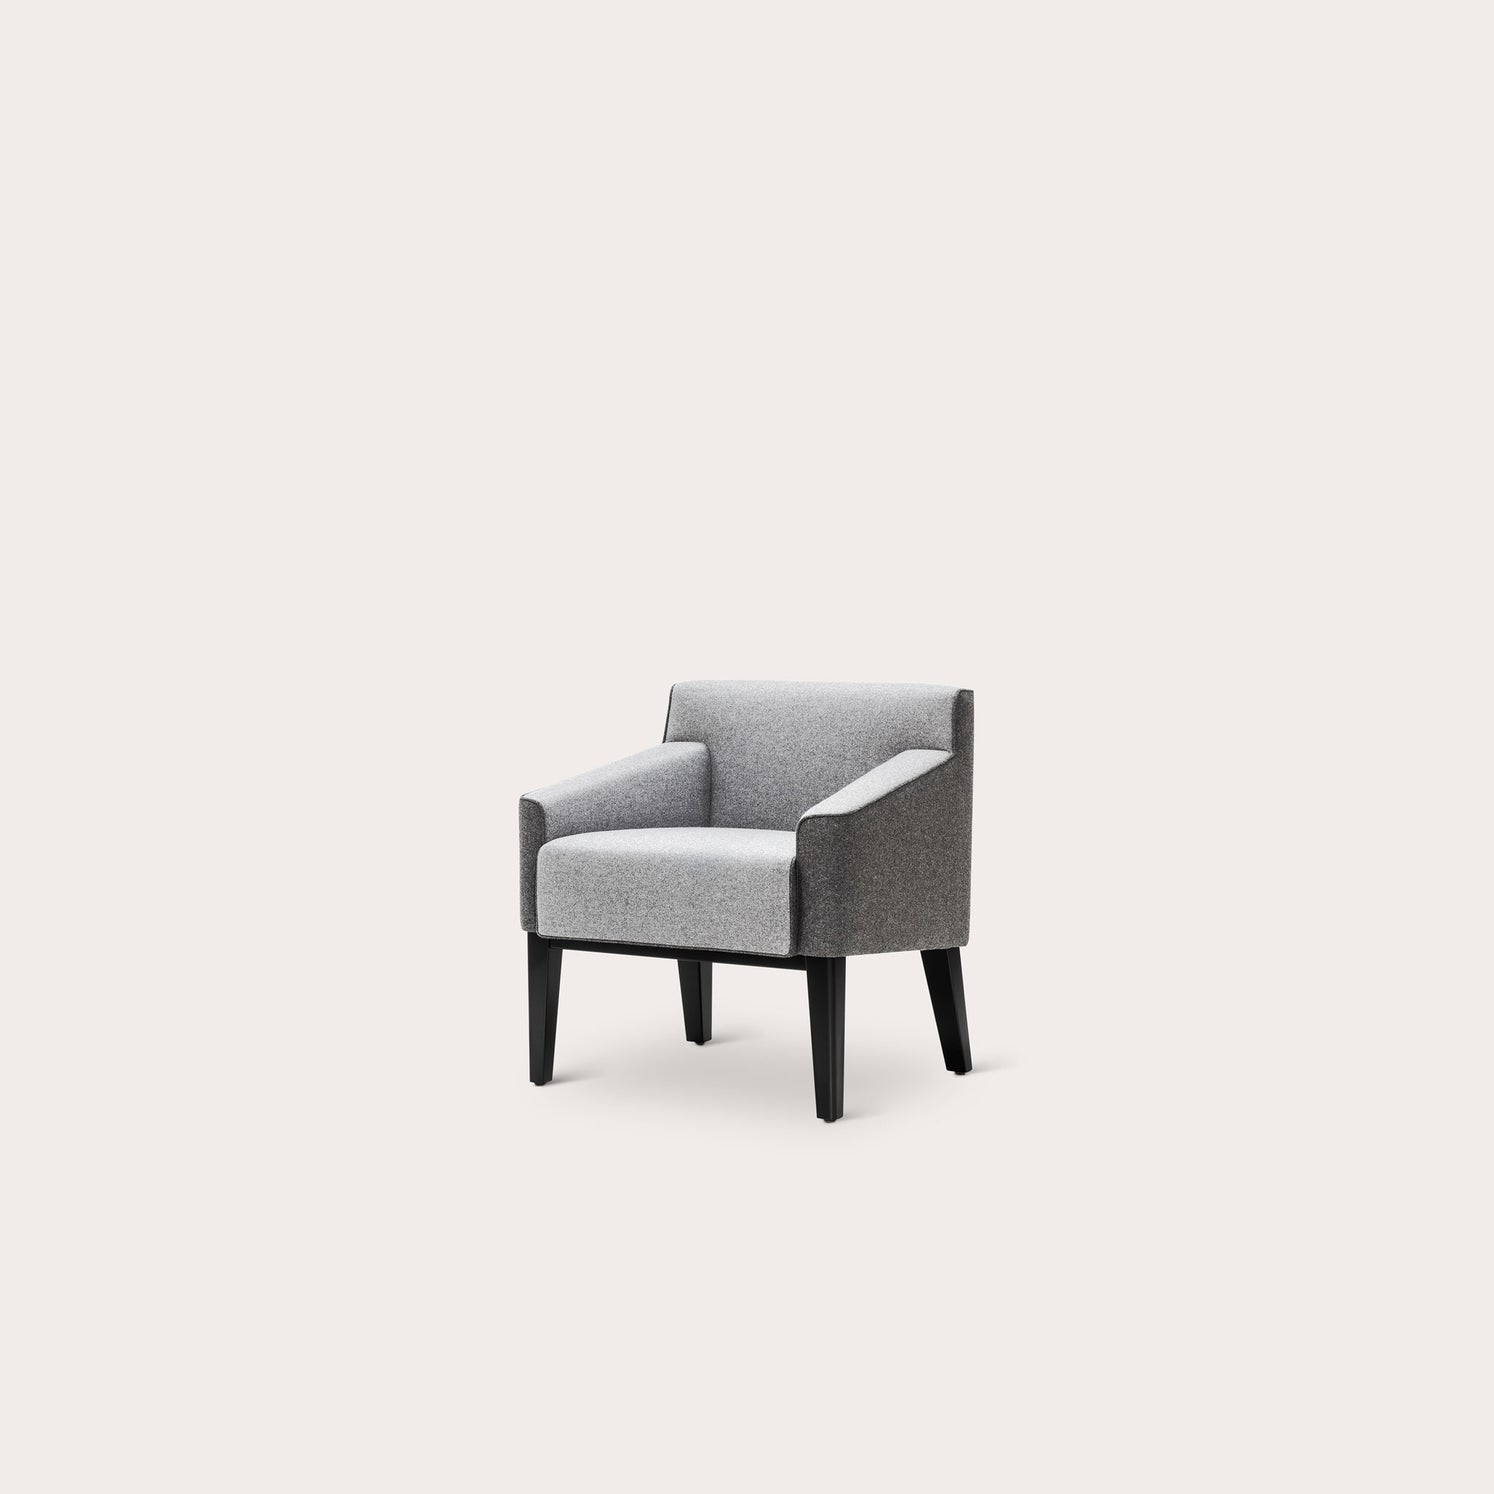 William Armchair Seating Hannes Wettstein Designer Furniture Sku: 758-120-10061